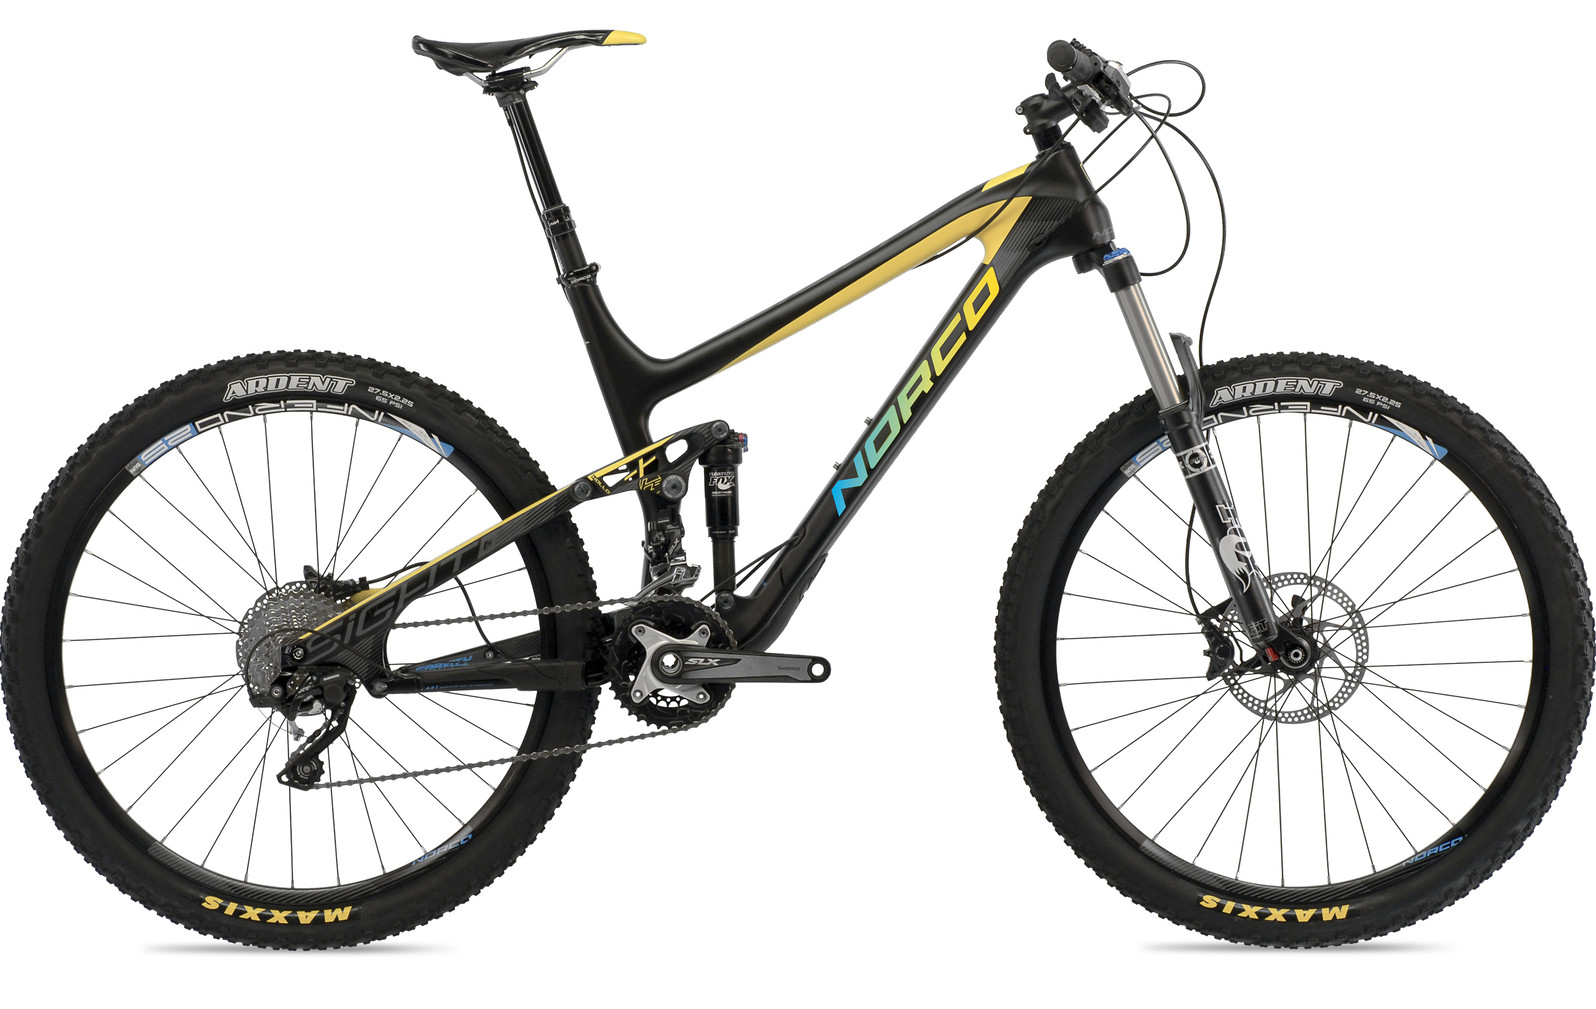 2014 Norco Sight Carbon 7 1.5 Bike